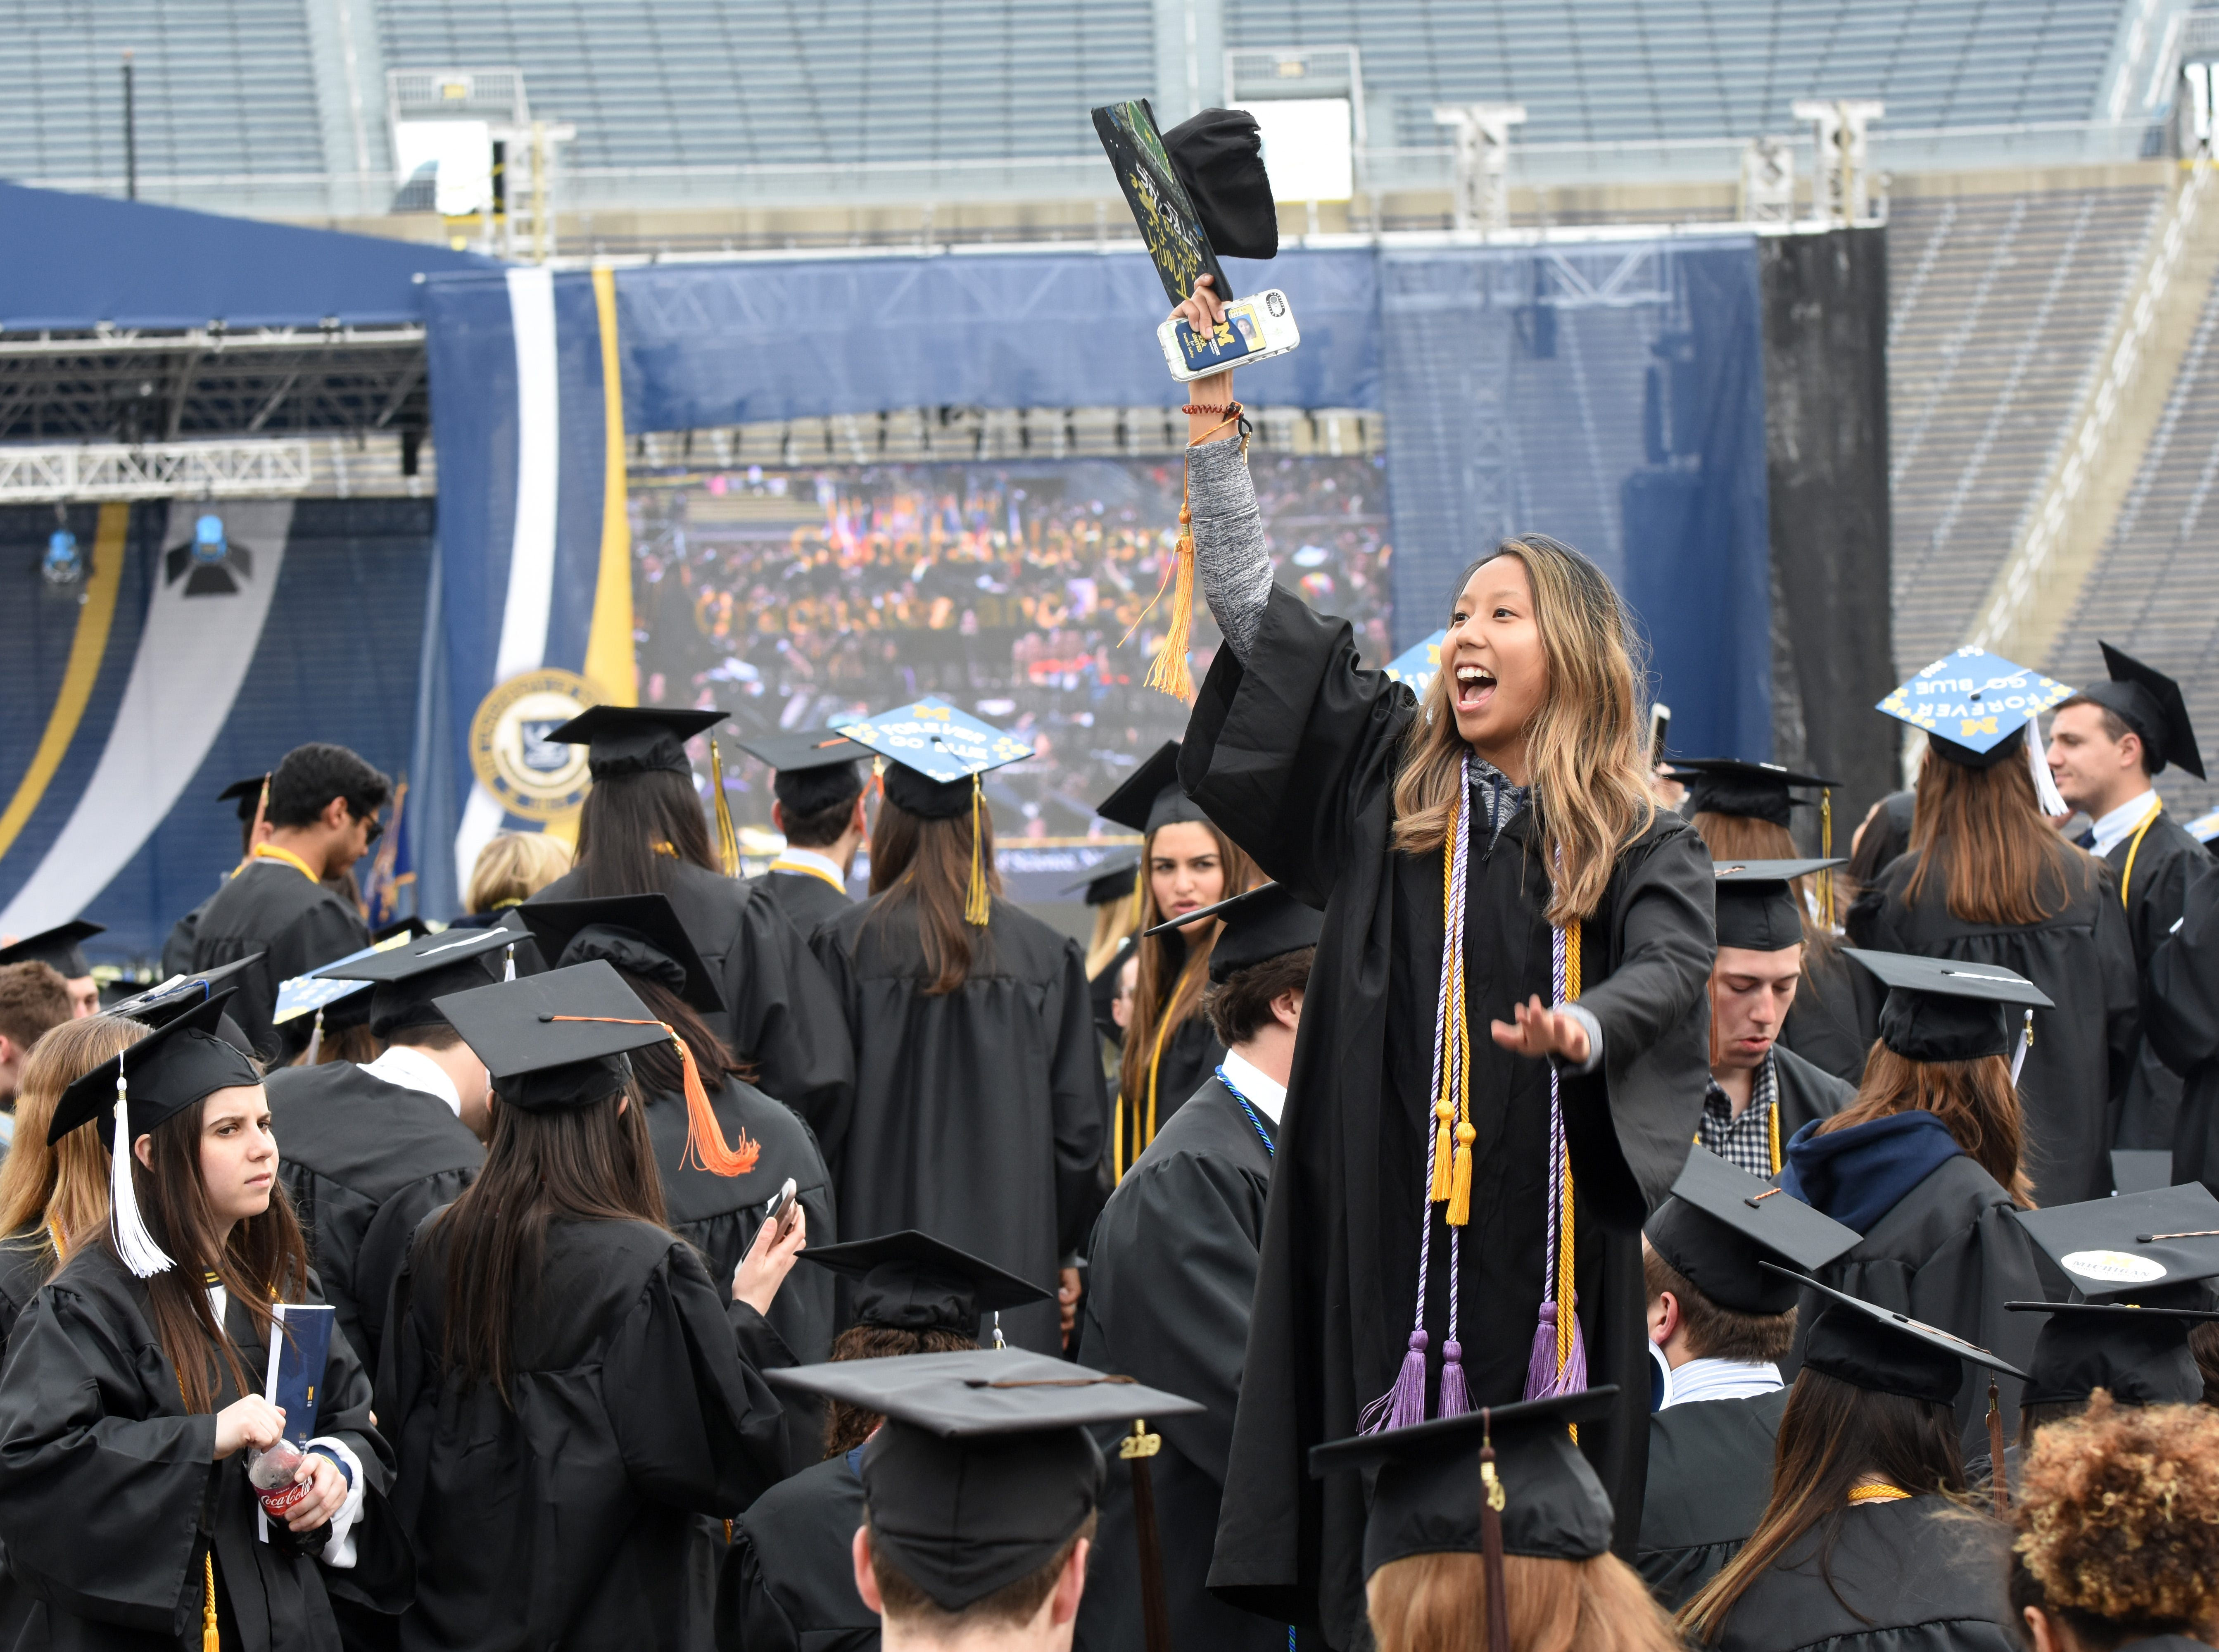 University of Michigan student Mimi Le waves to her family.